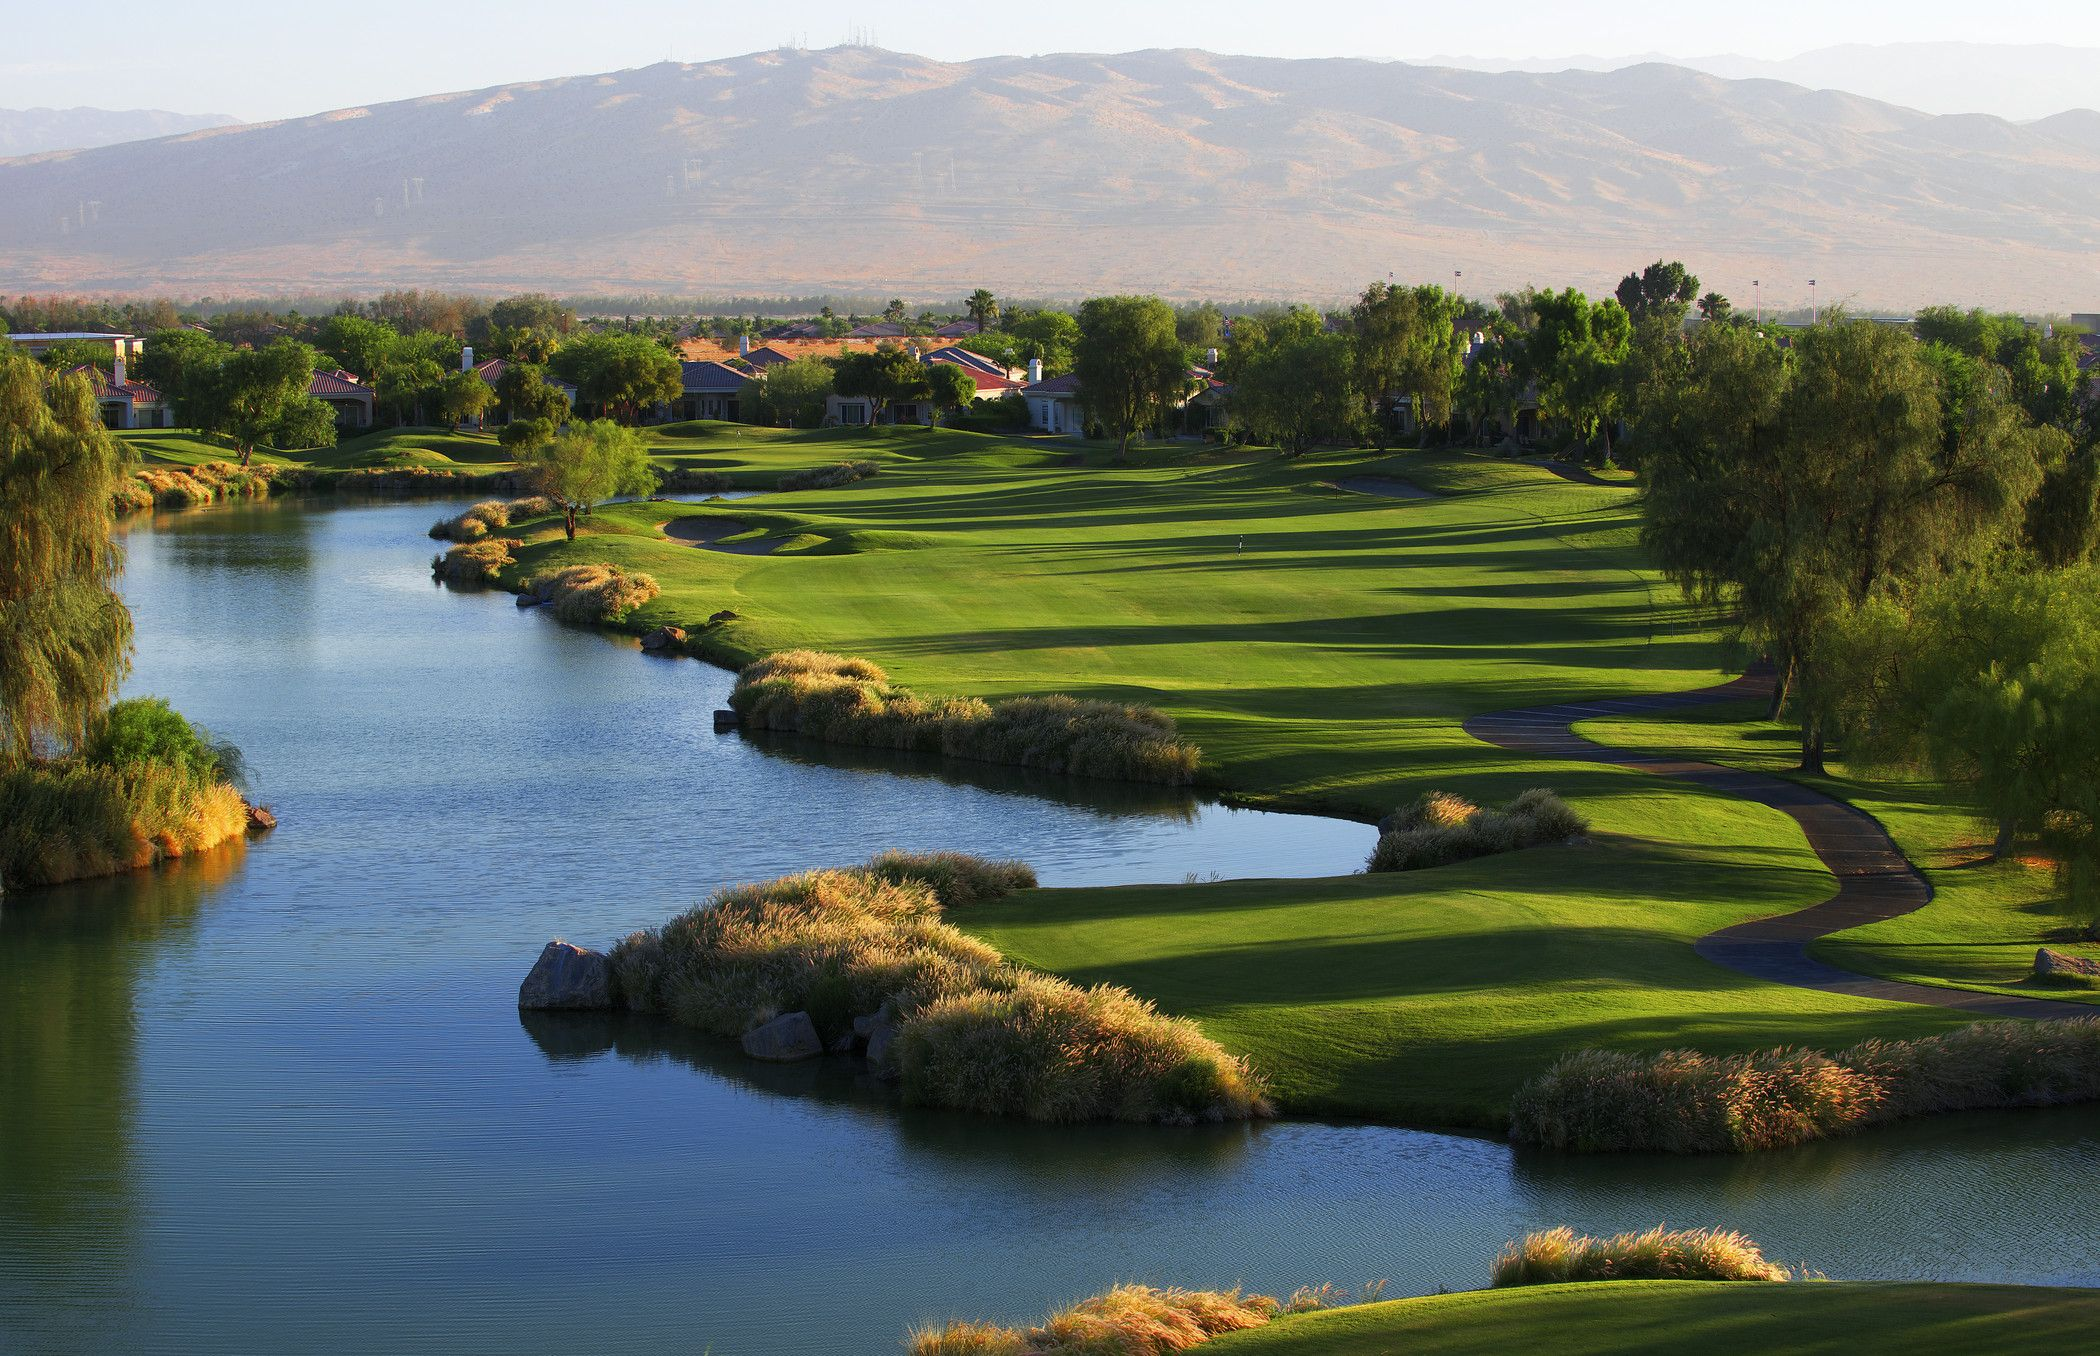 Resort Vacation Deals Palm springs resorts, Golf courses